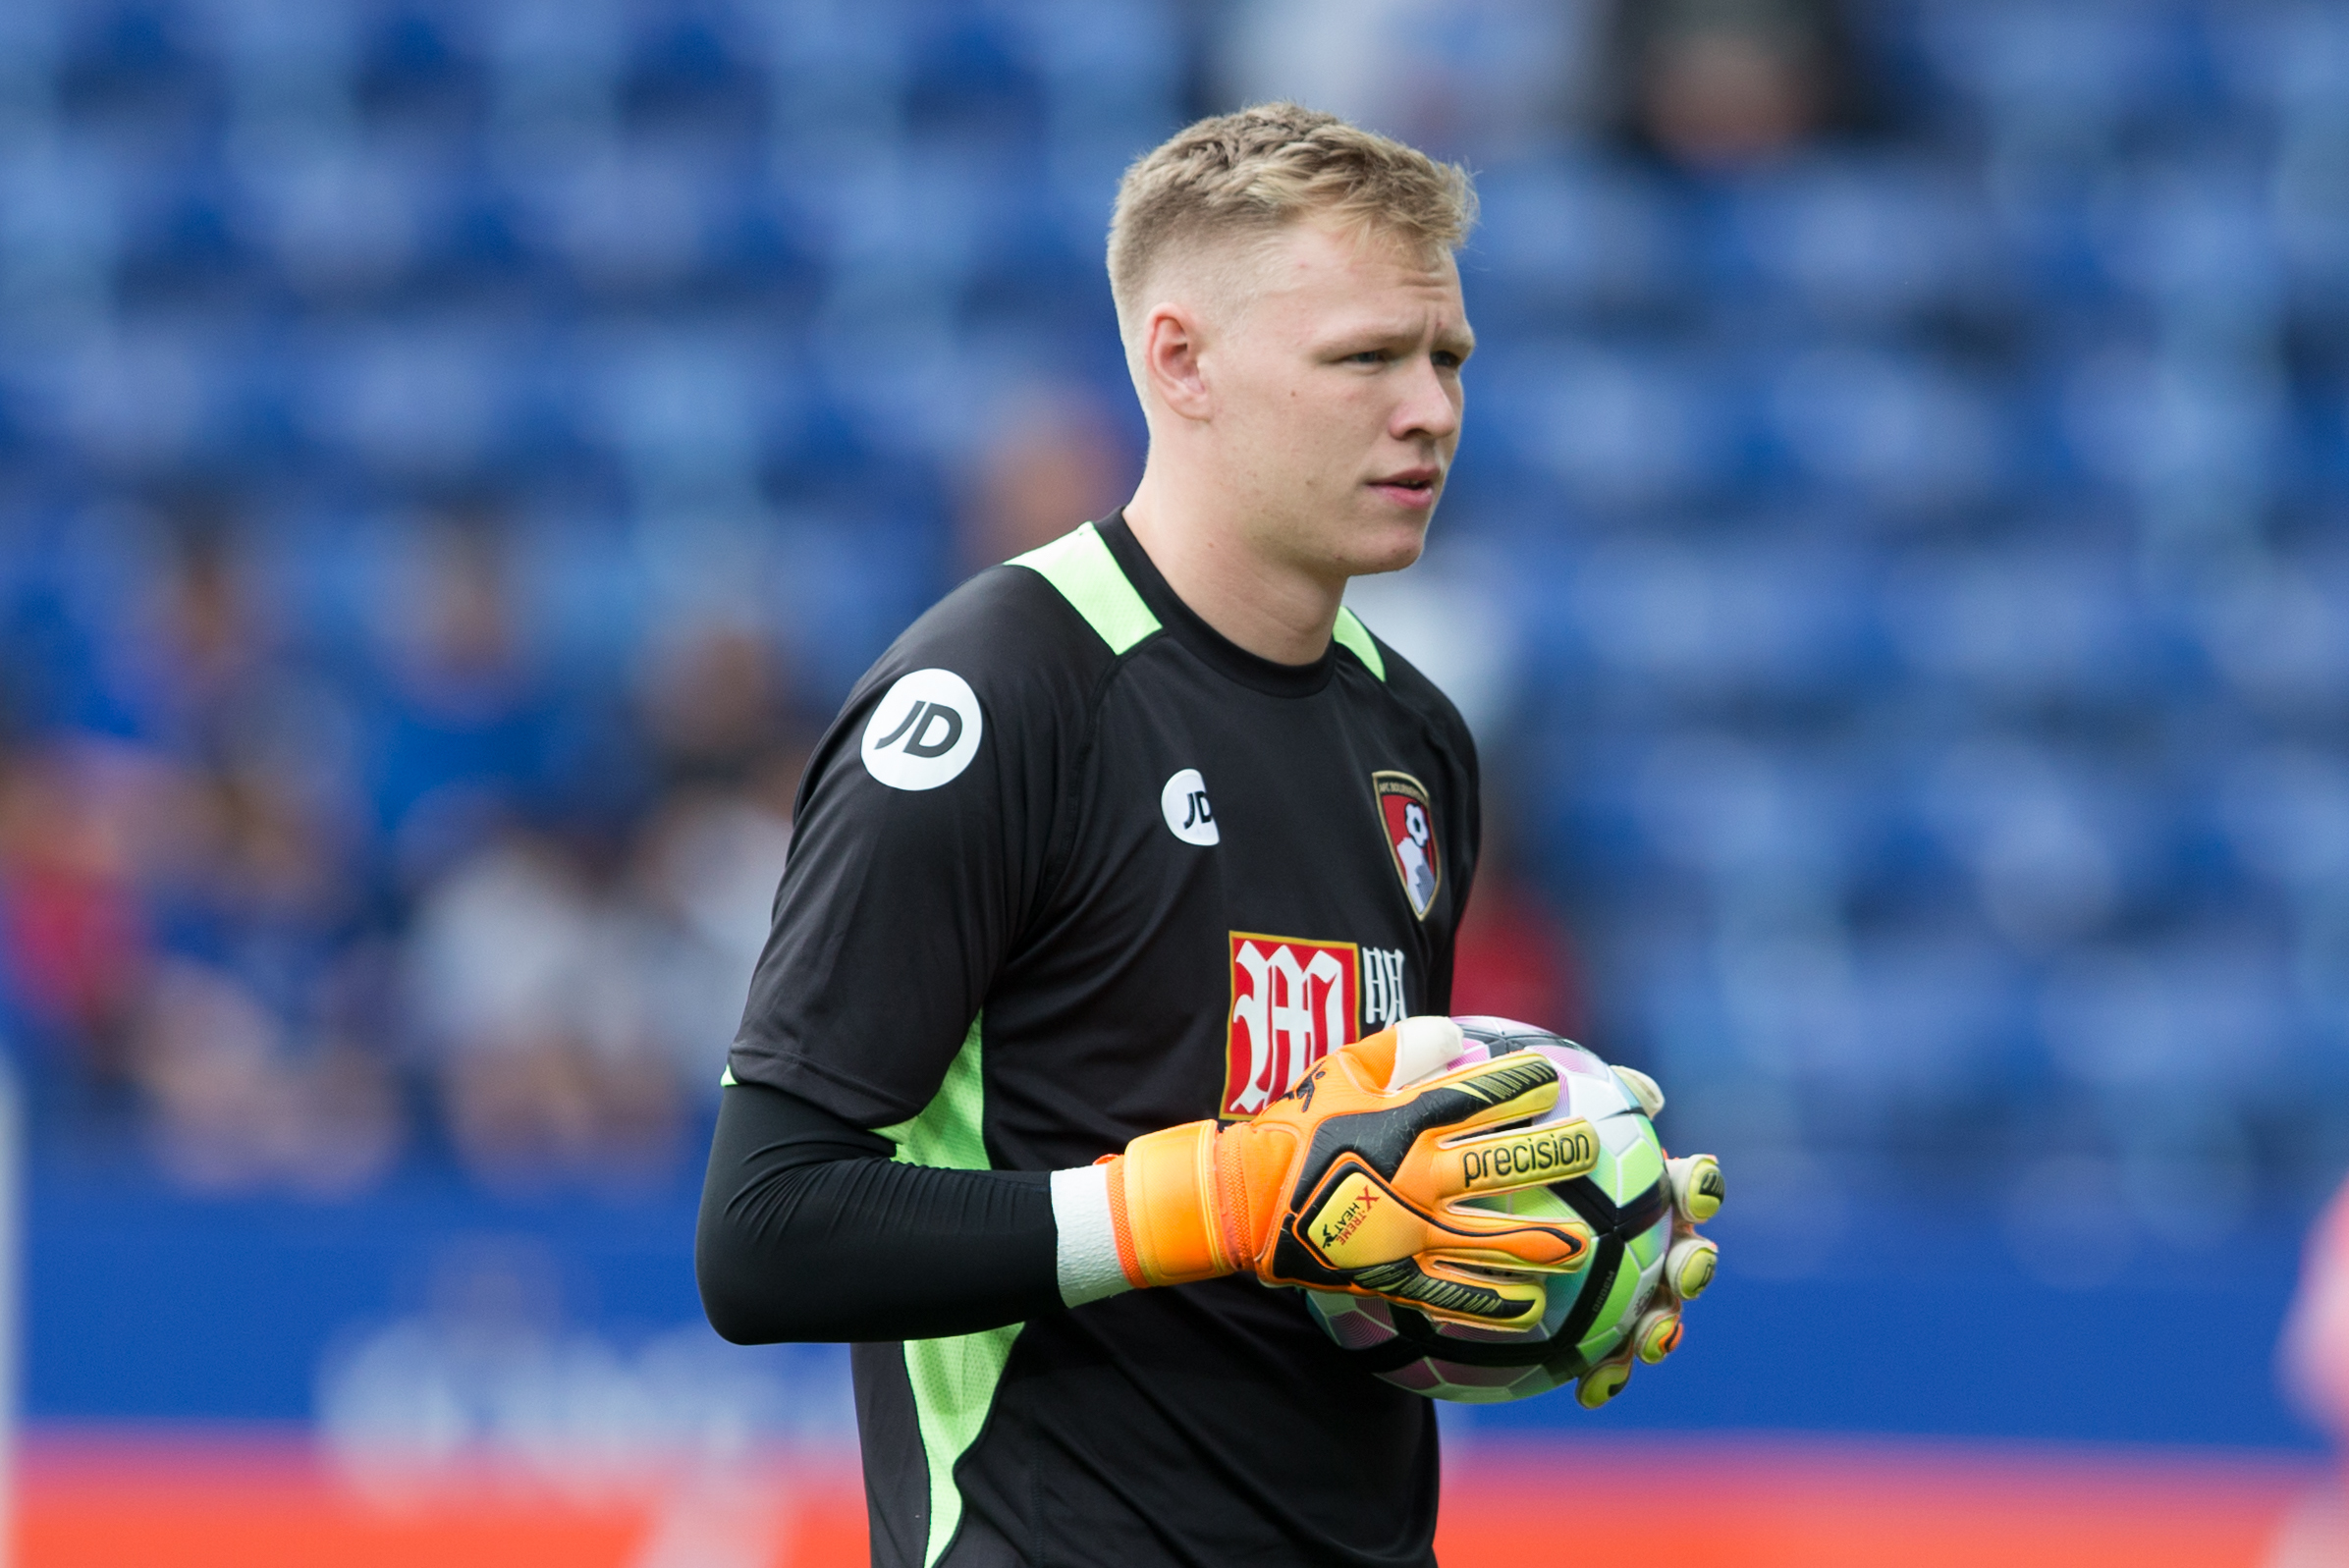 Ramsdale named League One player of the month